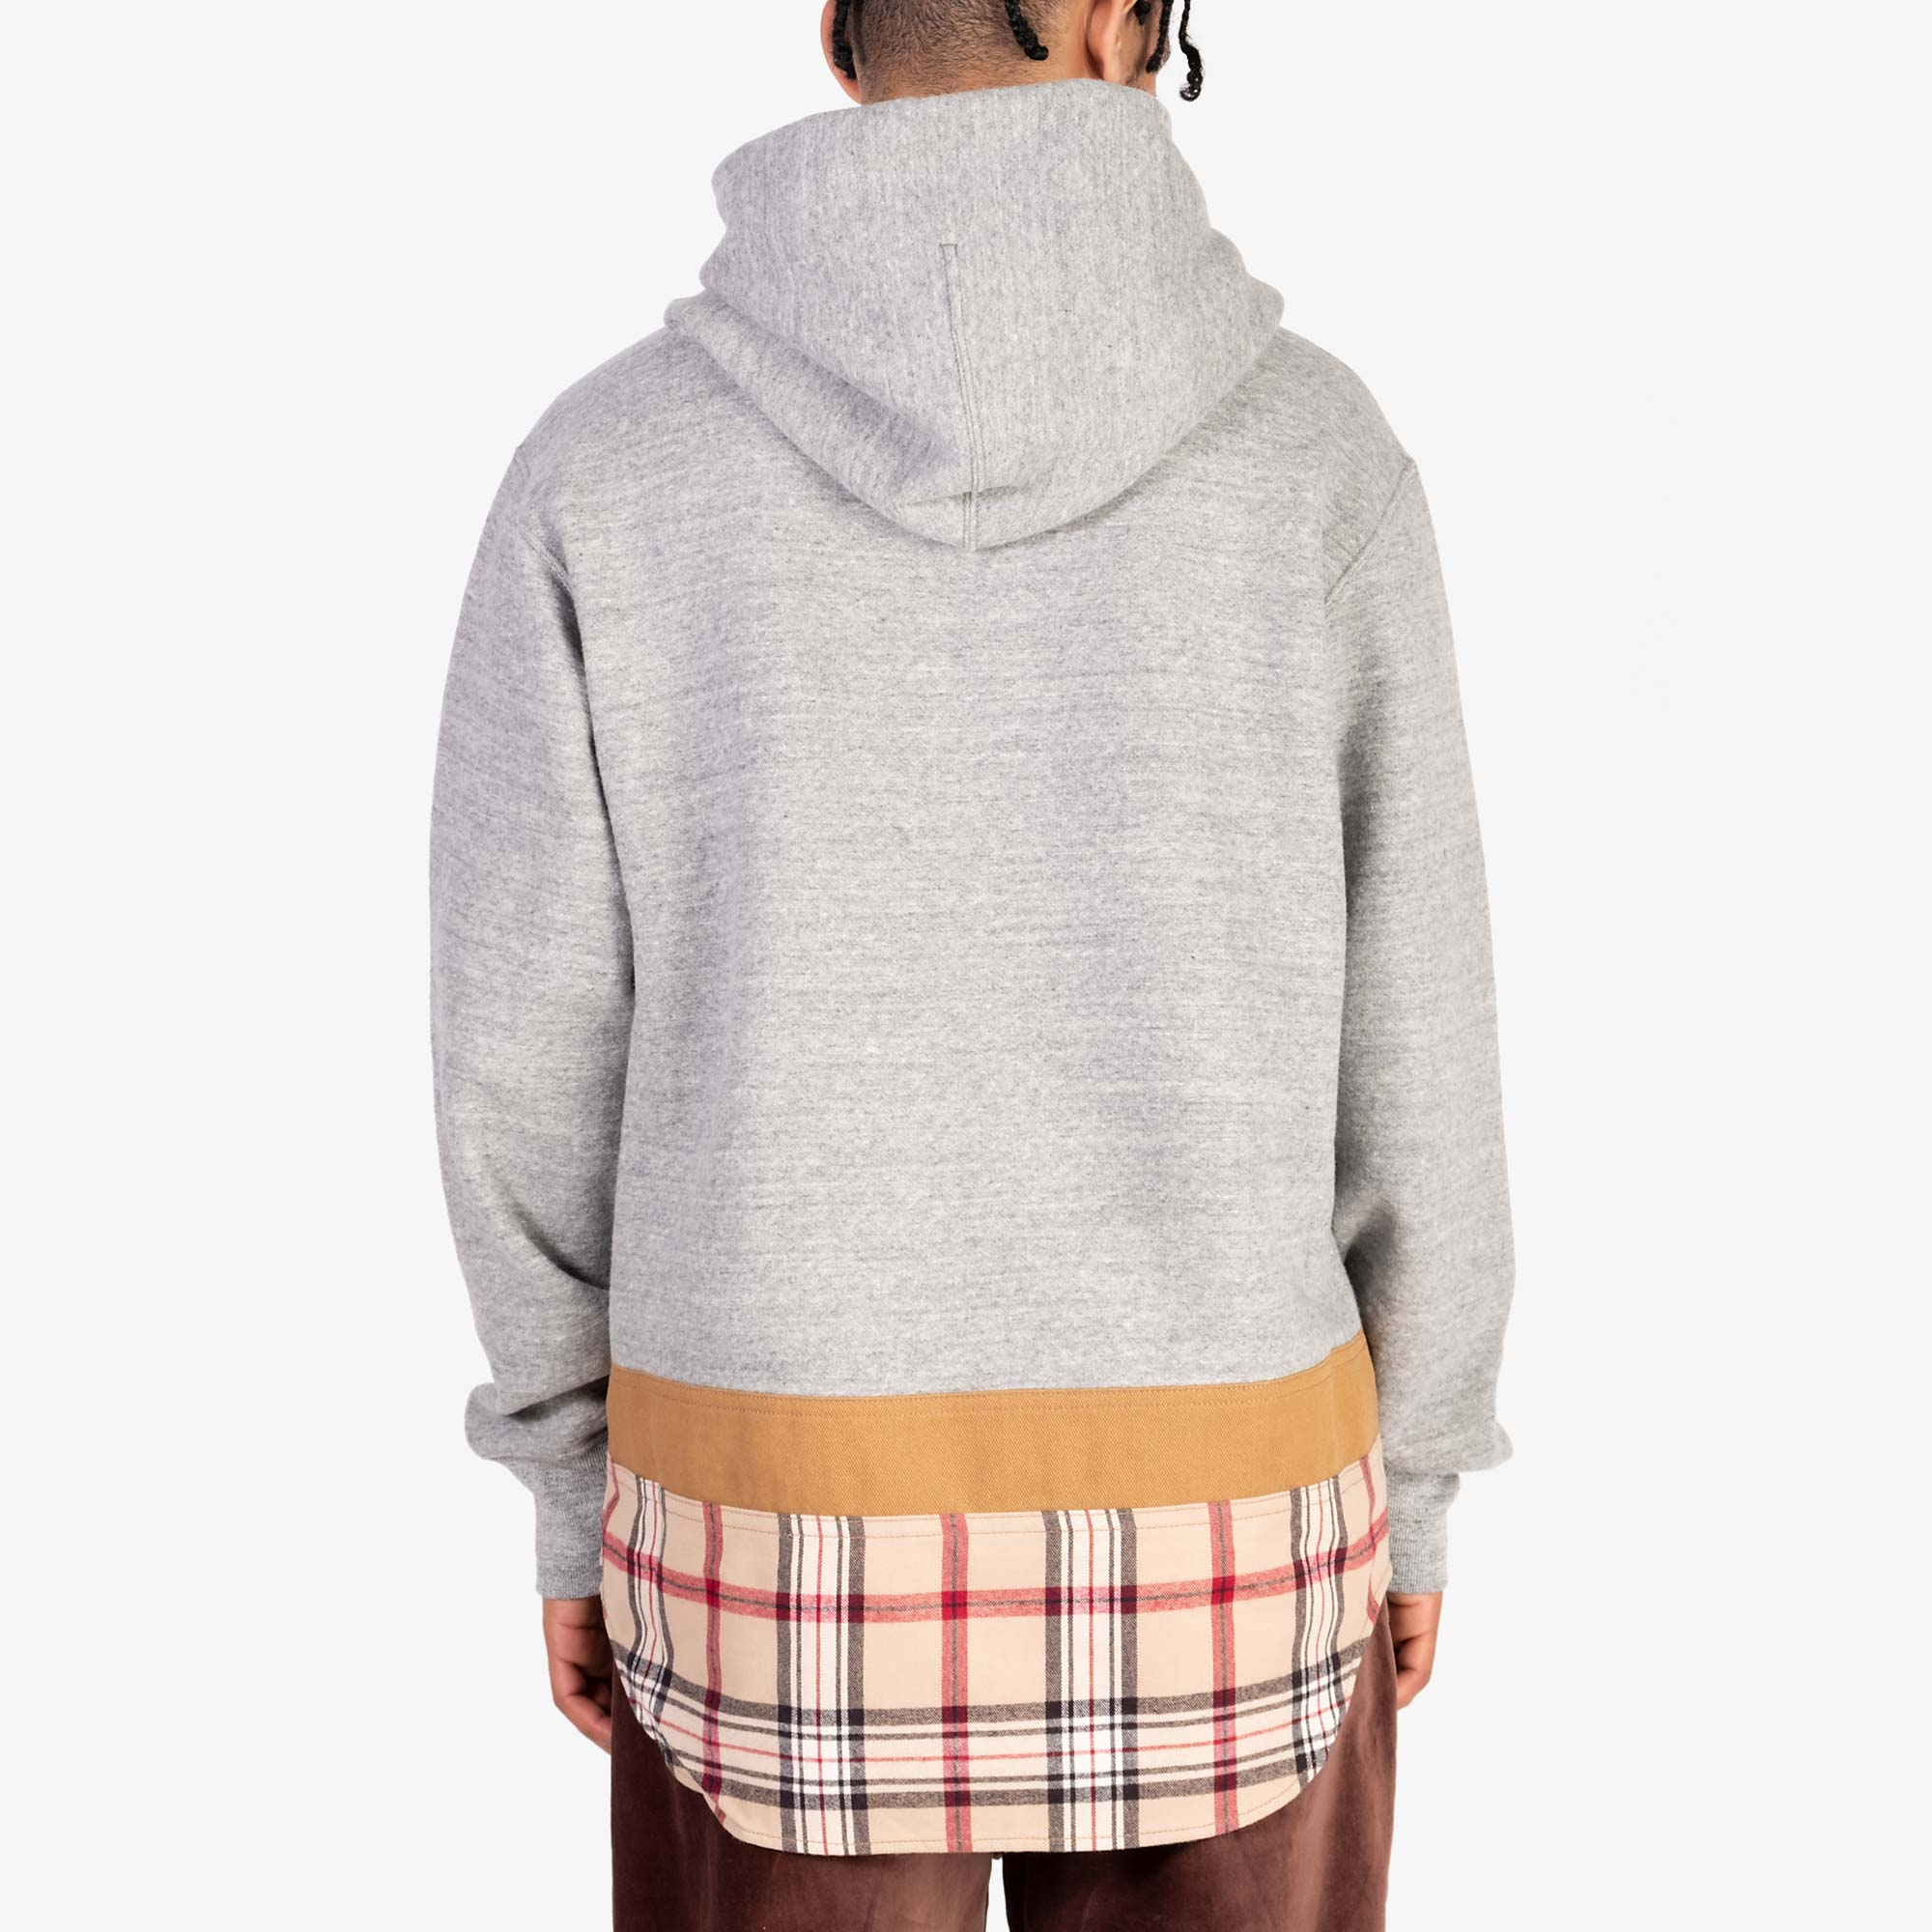 Comme des Garçons - Homme Checked Hem Pullover Hooded Sweat T004 - Grey / Multi 8